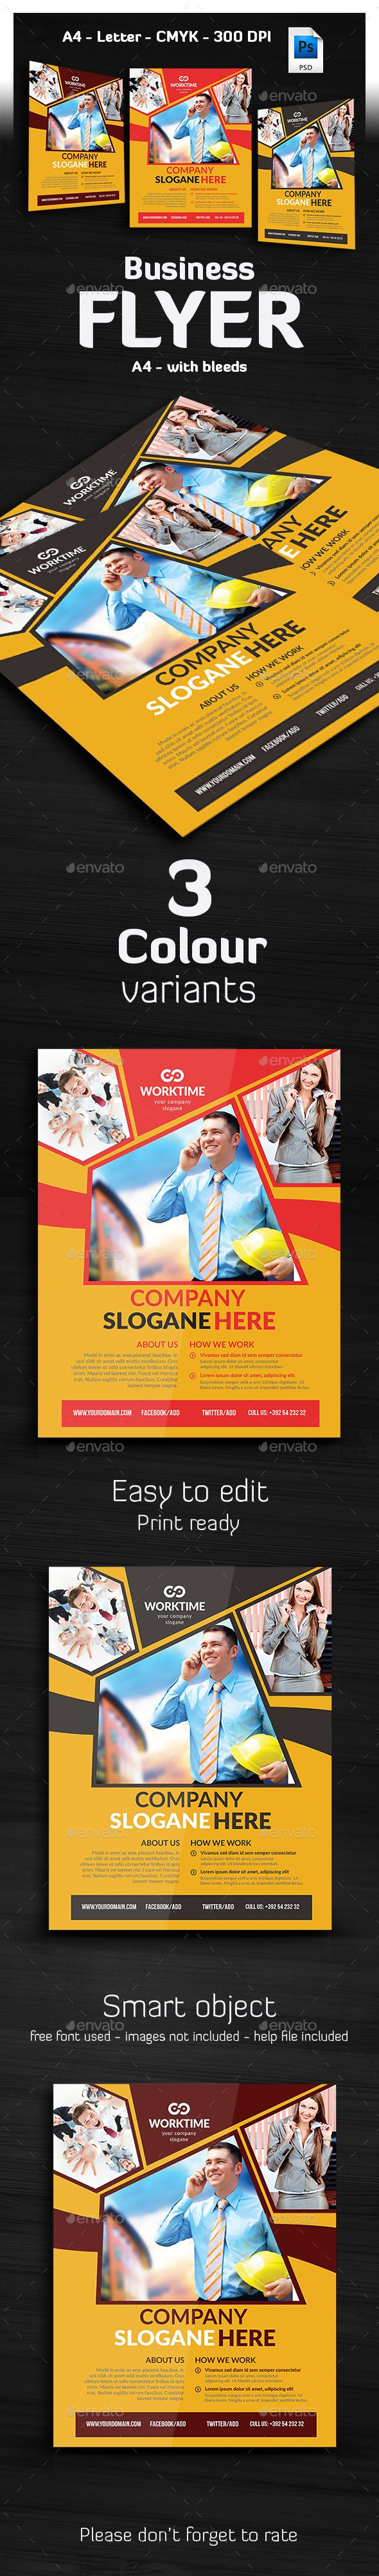 Multipurpose Business Flyer Design - Corporate Flyer Template PSD. Download here: http://graphicriver.net/item/multipurpose-business-flyer-/16874778?ref=yinkira